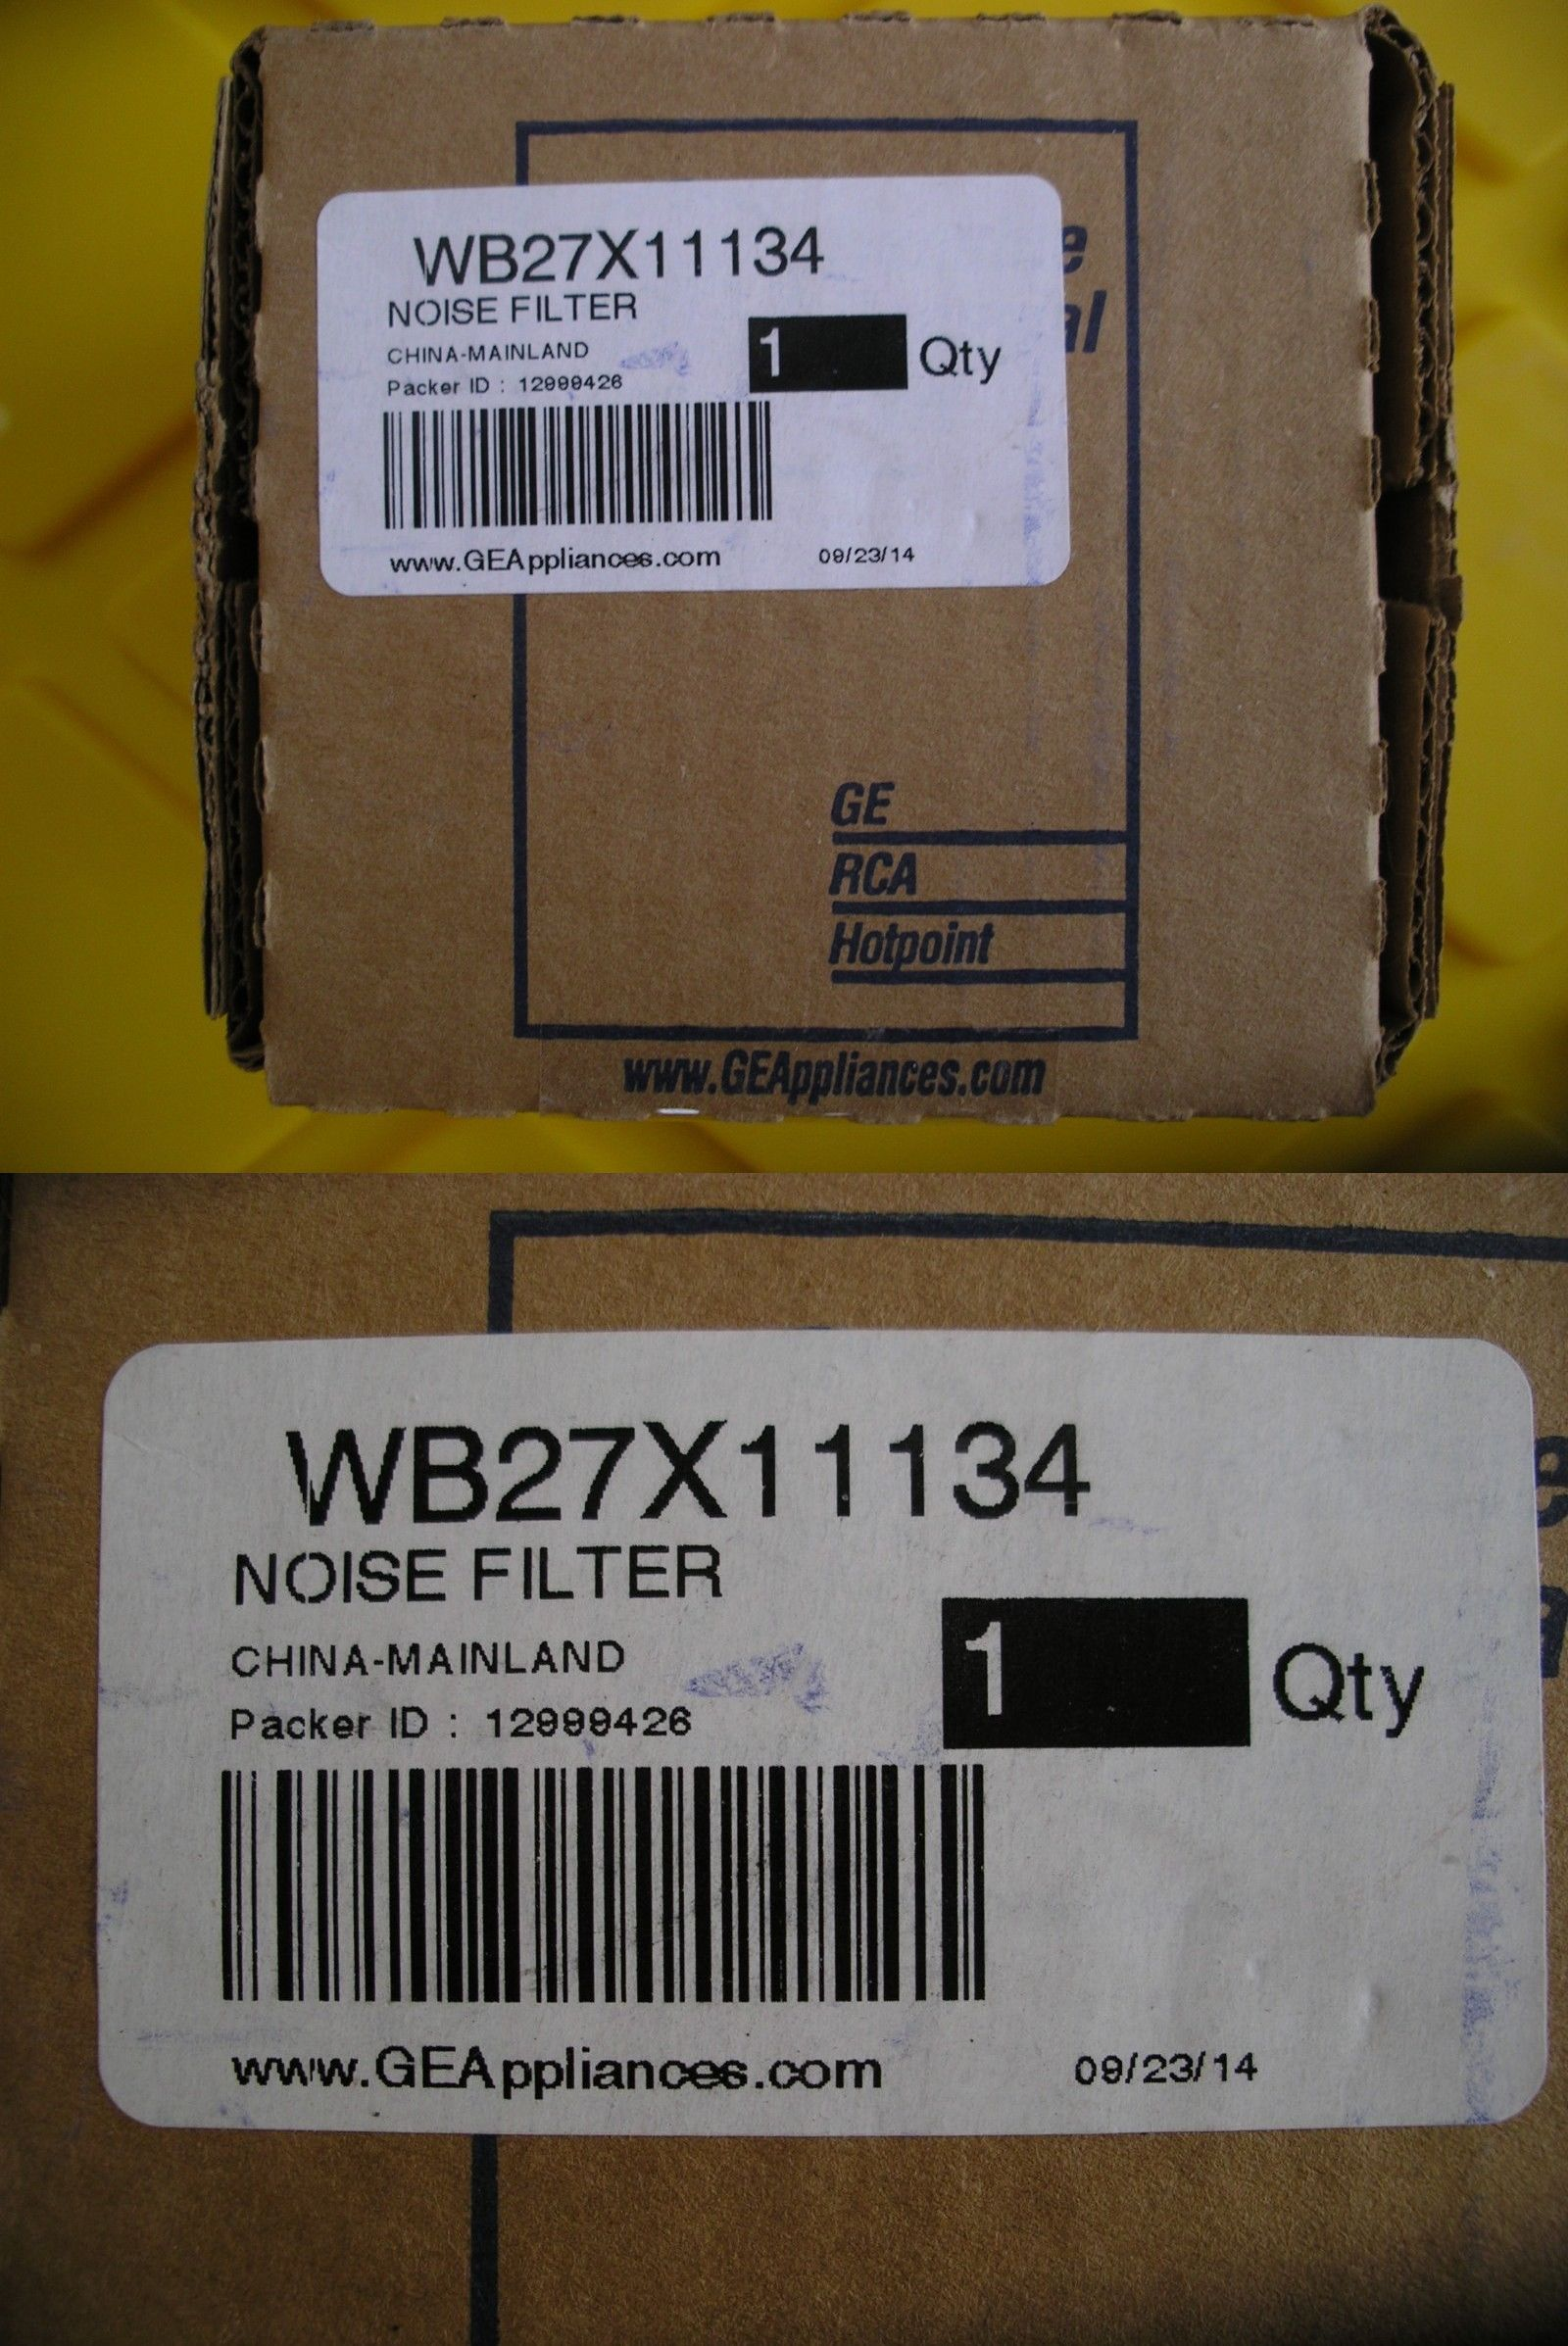 Microwave Parts And Accessories 159903 Wb27x11134 Genuine Ge Noise Filter Oem Brand New Sealed Fast Free Shipping Buy Noise Filter Microwave Parts Noise